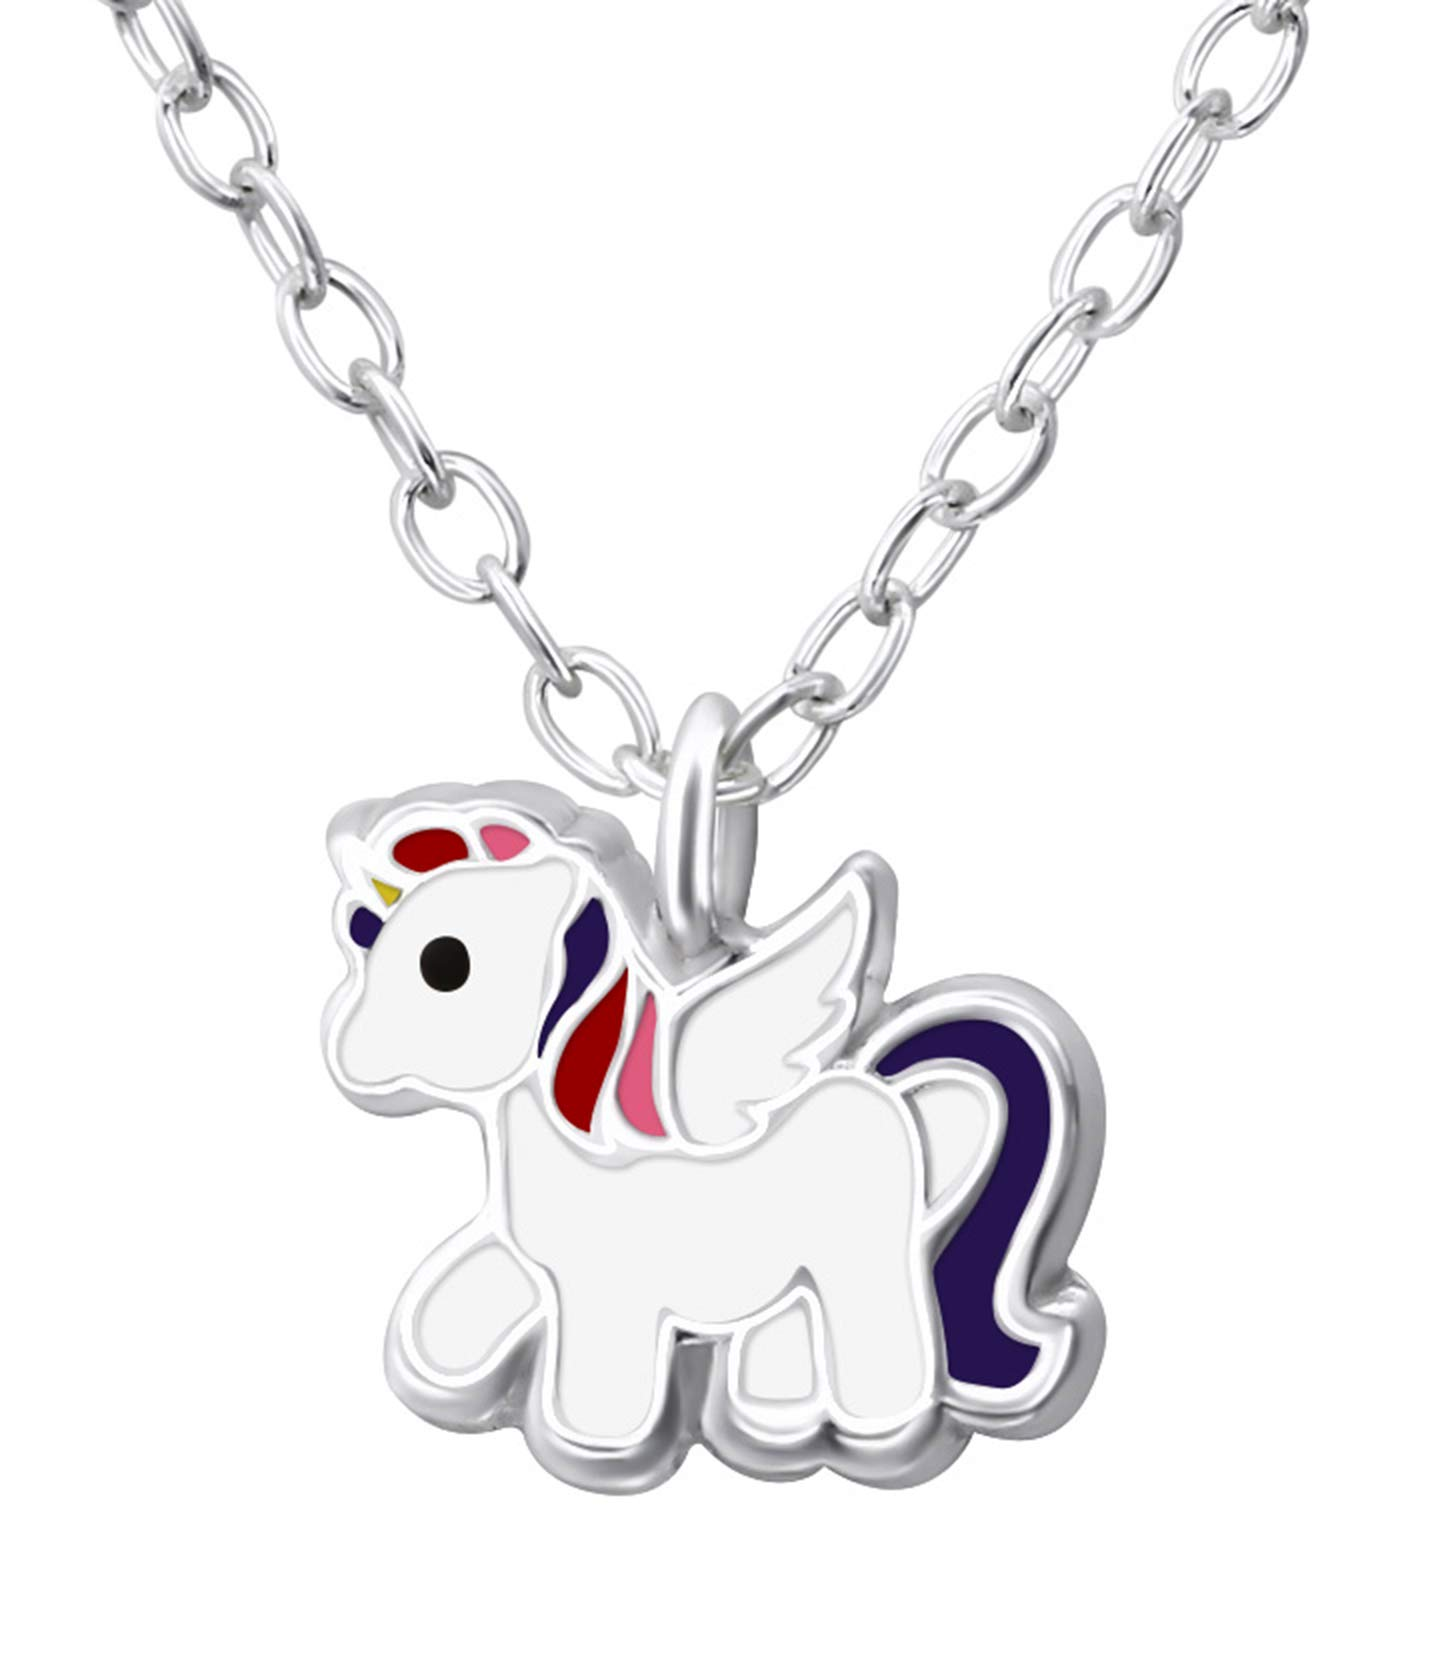 Best Wing Jewelry .925 Sterling Silver''Very Tiny Unicorn/Pony'' Children's Necklace